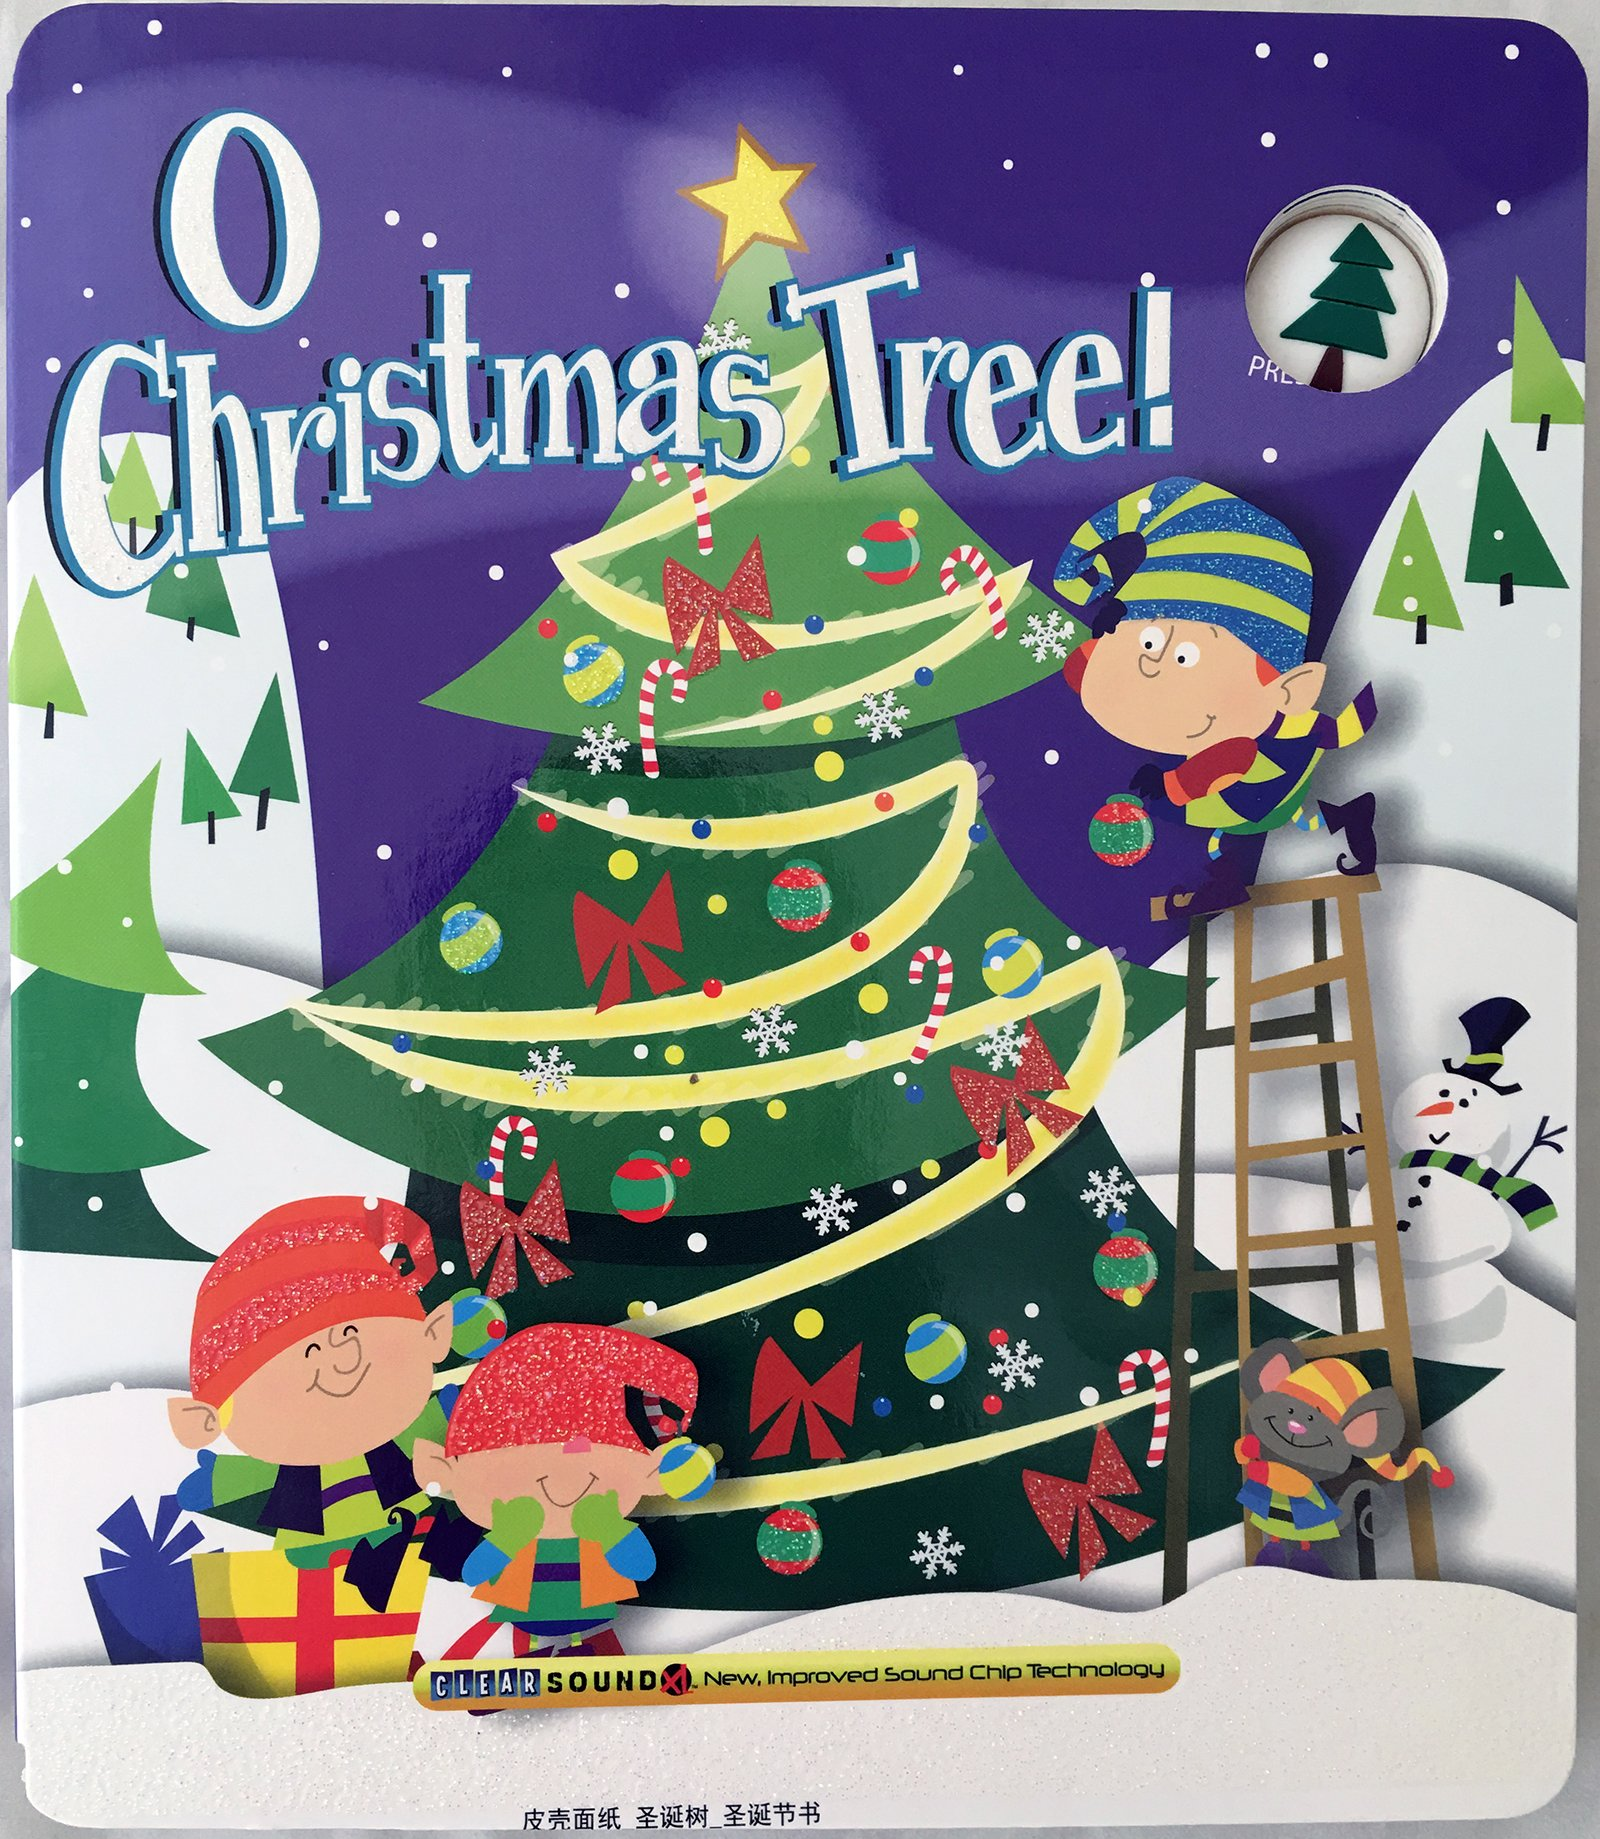 O Christmas Tree! (A Christmas Carol Book)